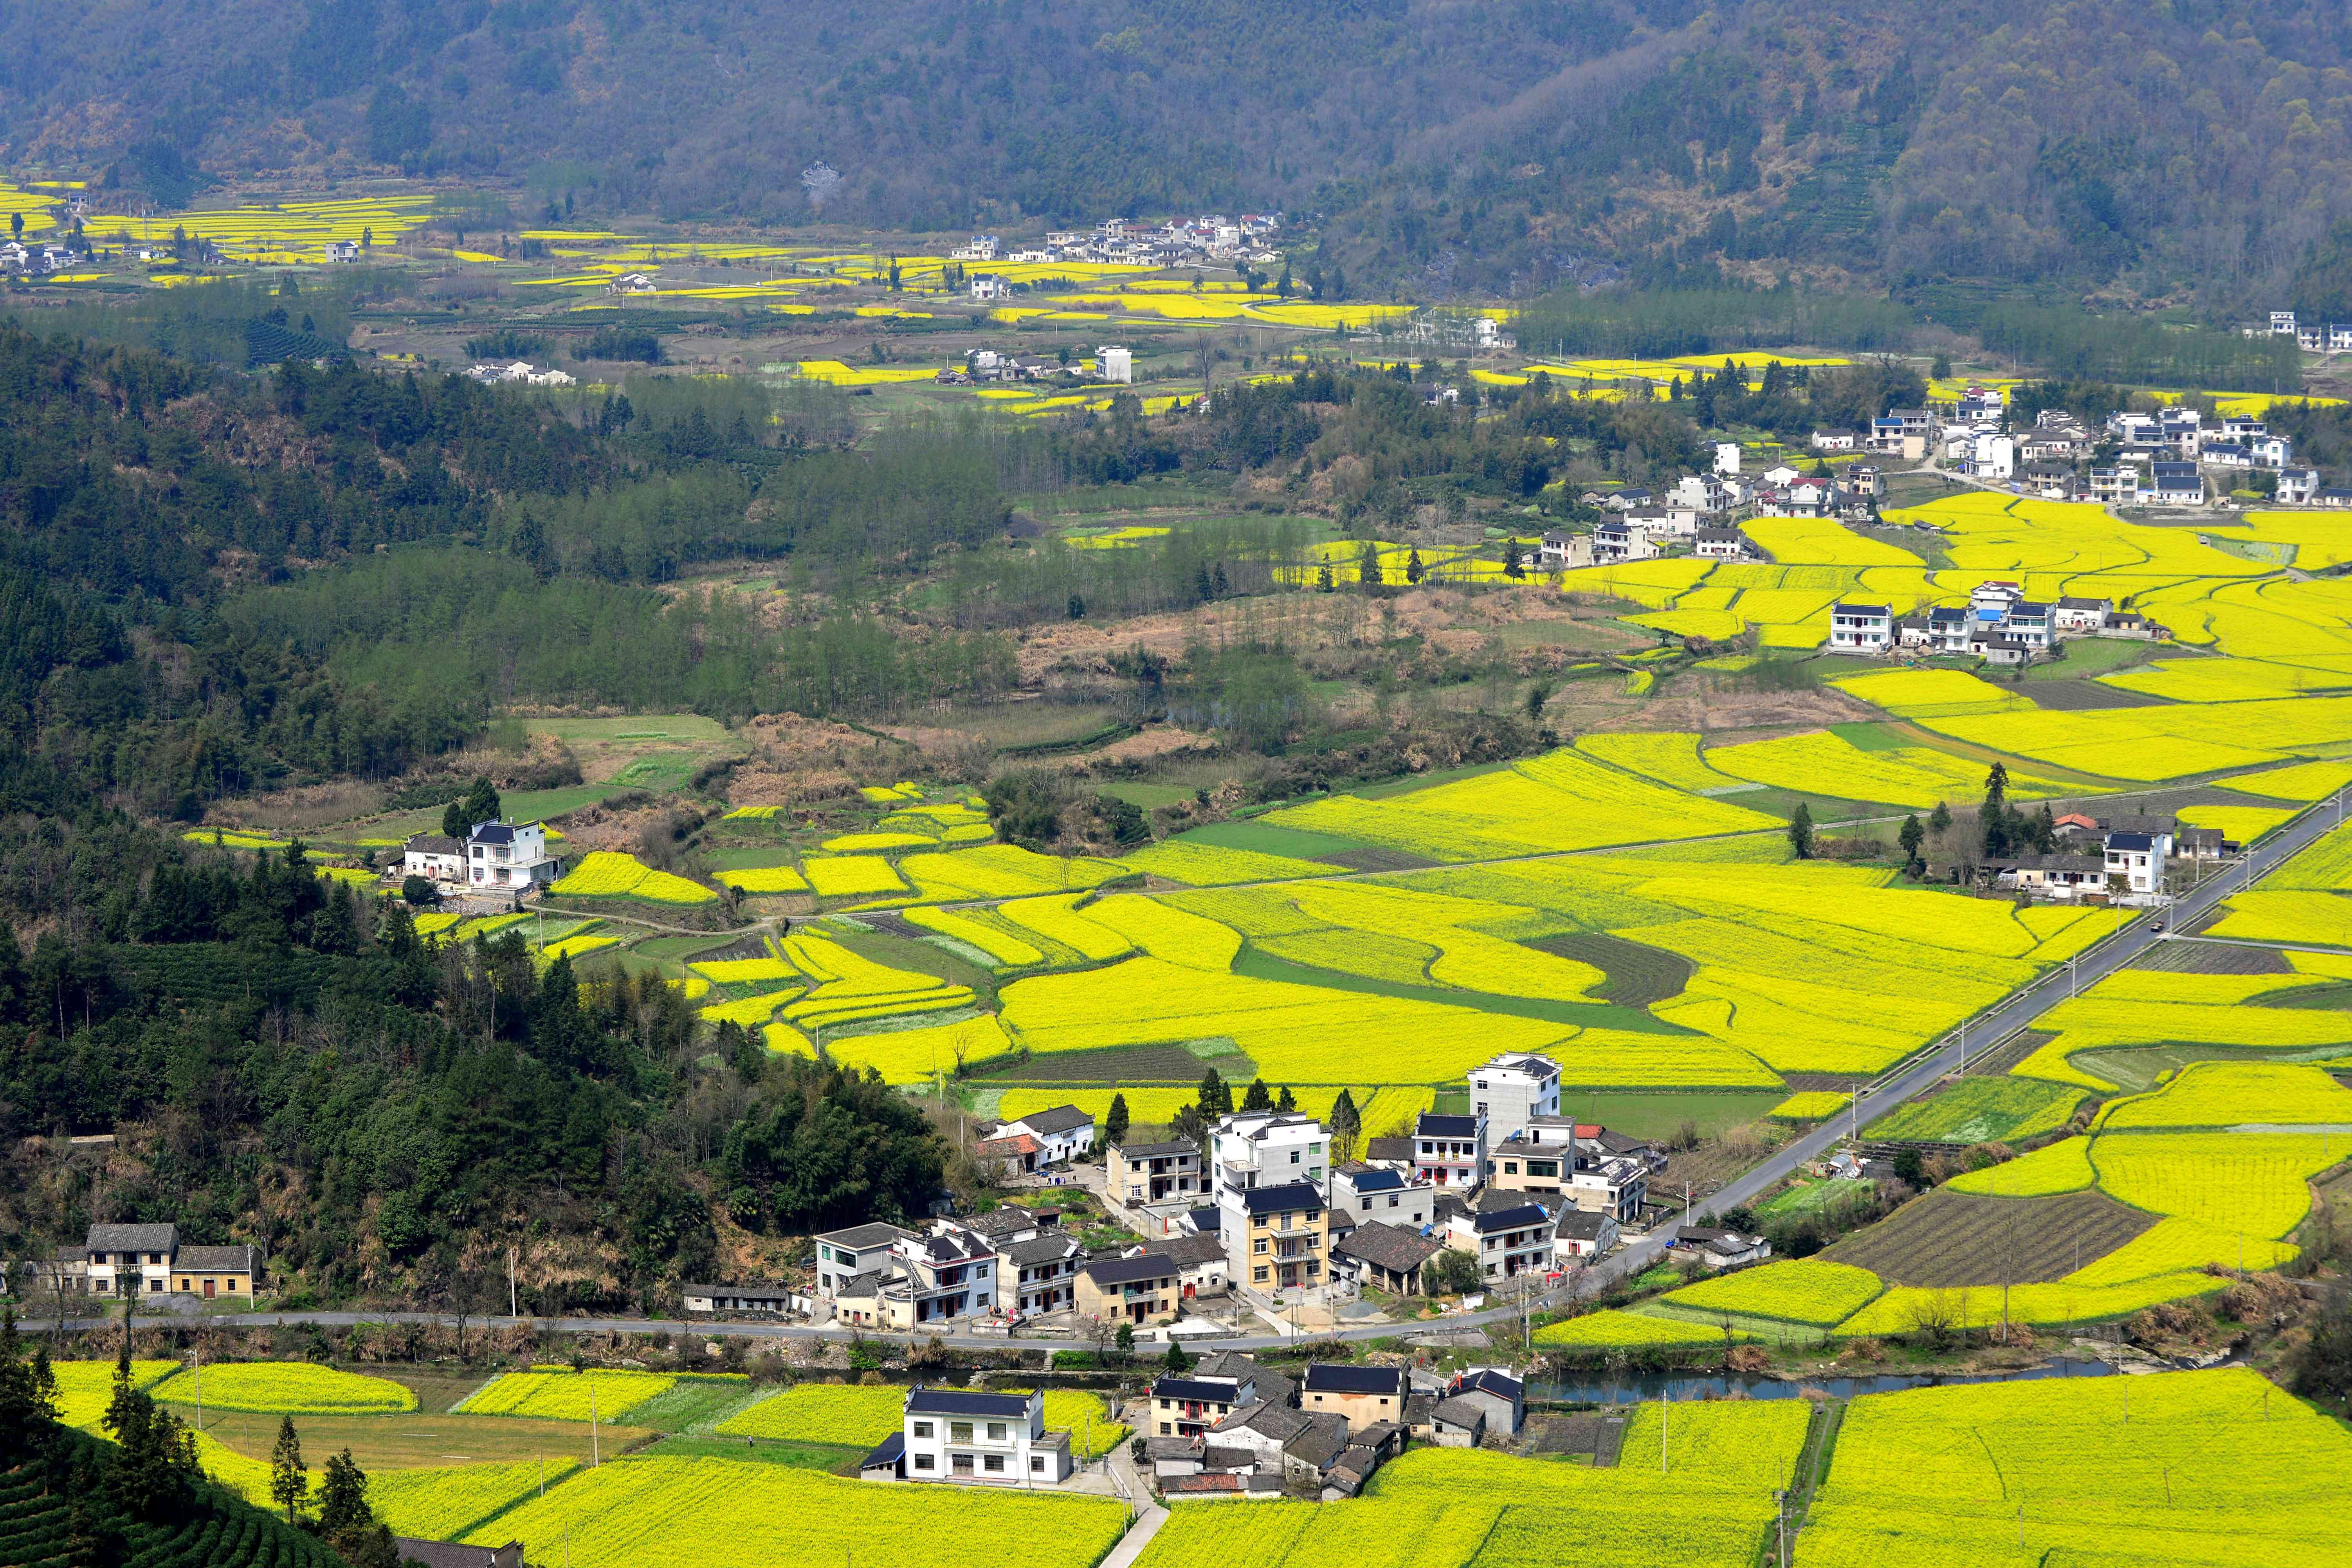 Fields of bright yellow rapeseed flowers color the Jiangxi landscape